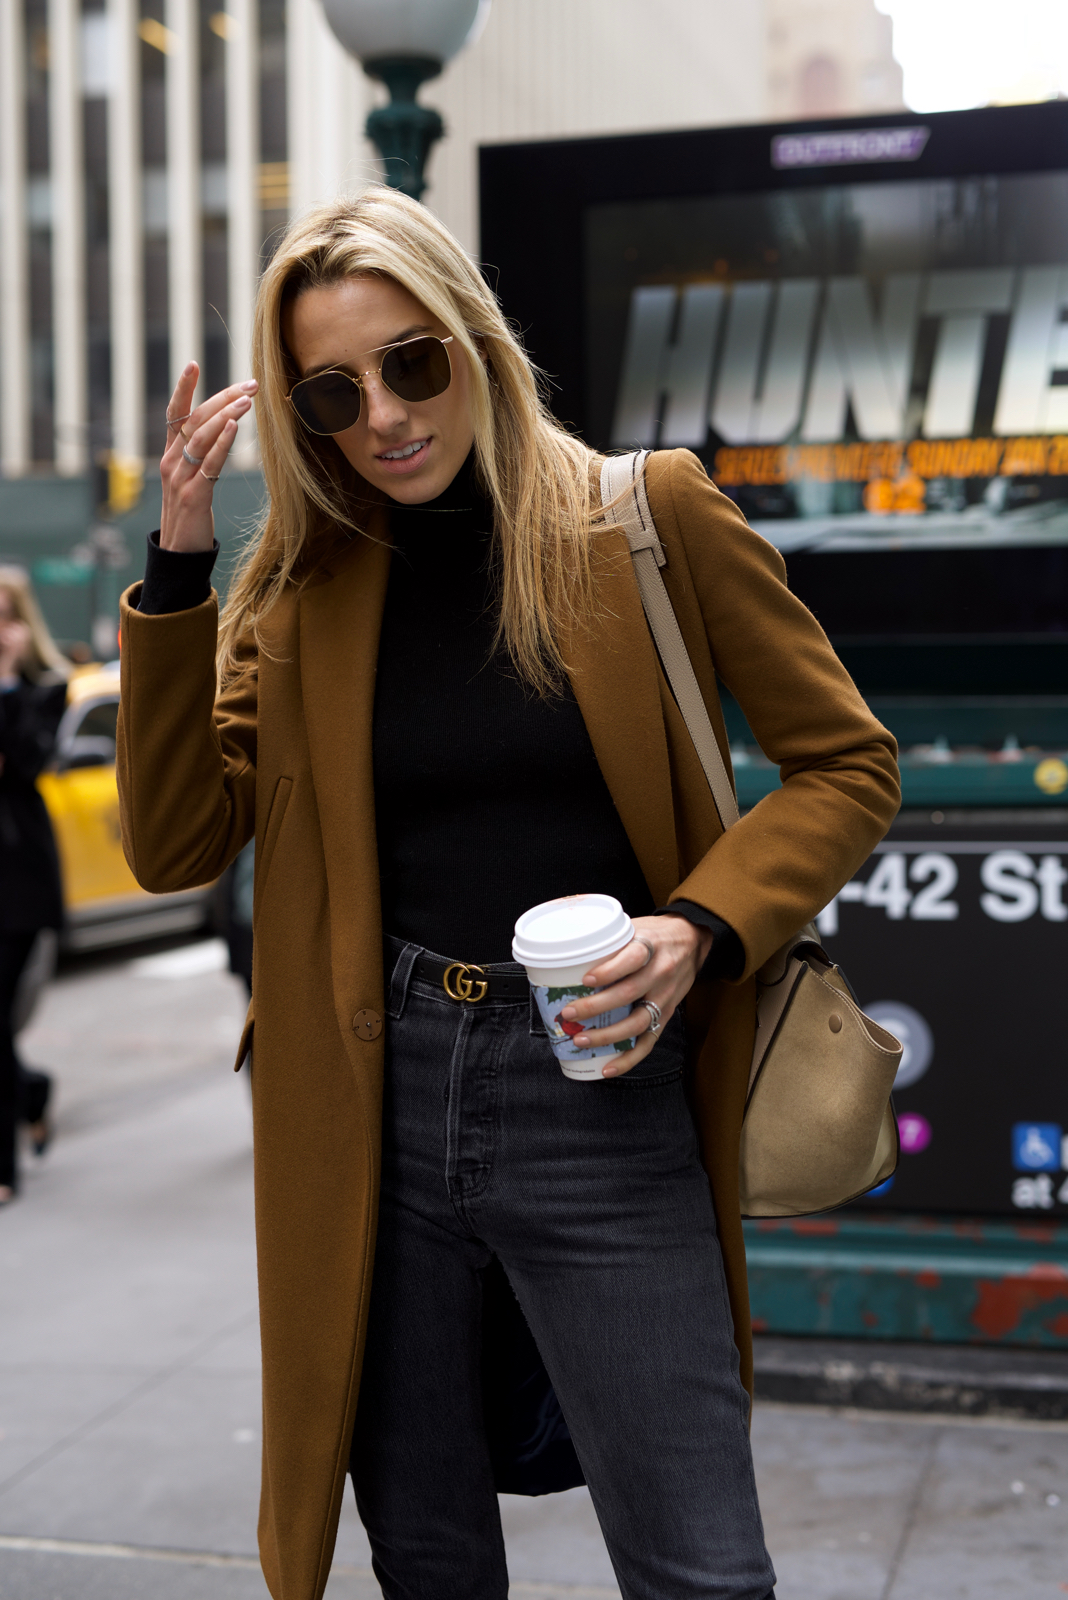 NYC Street Style in All Black with a Camel Coat - Mind Body